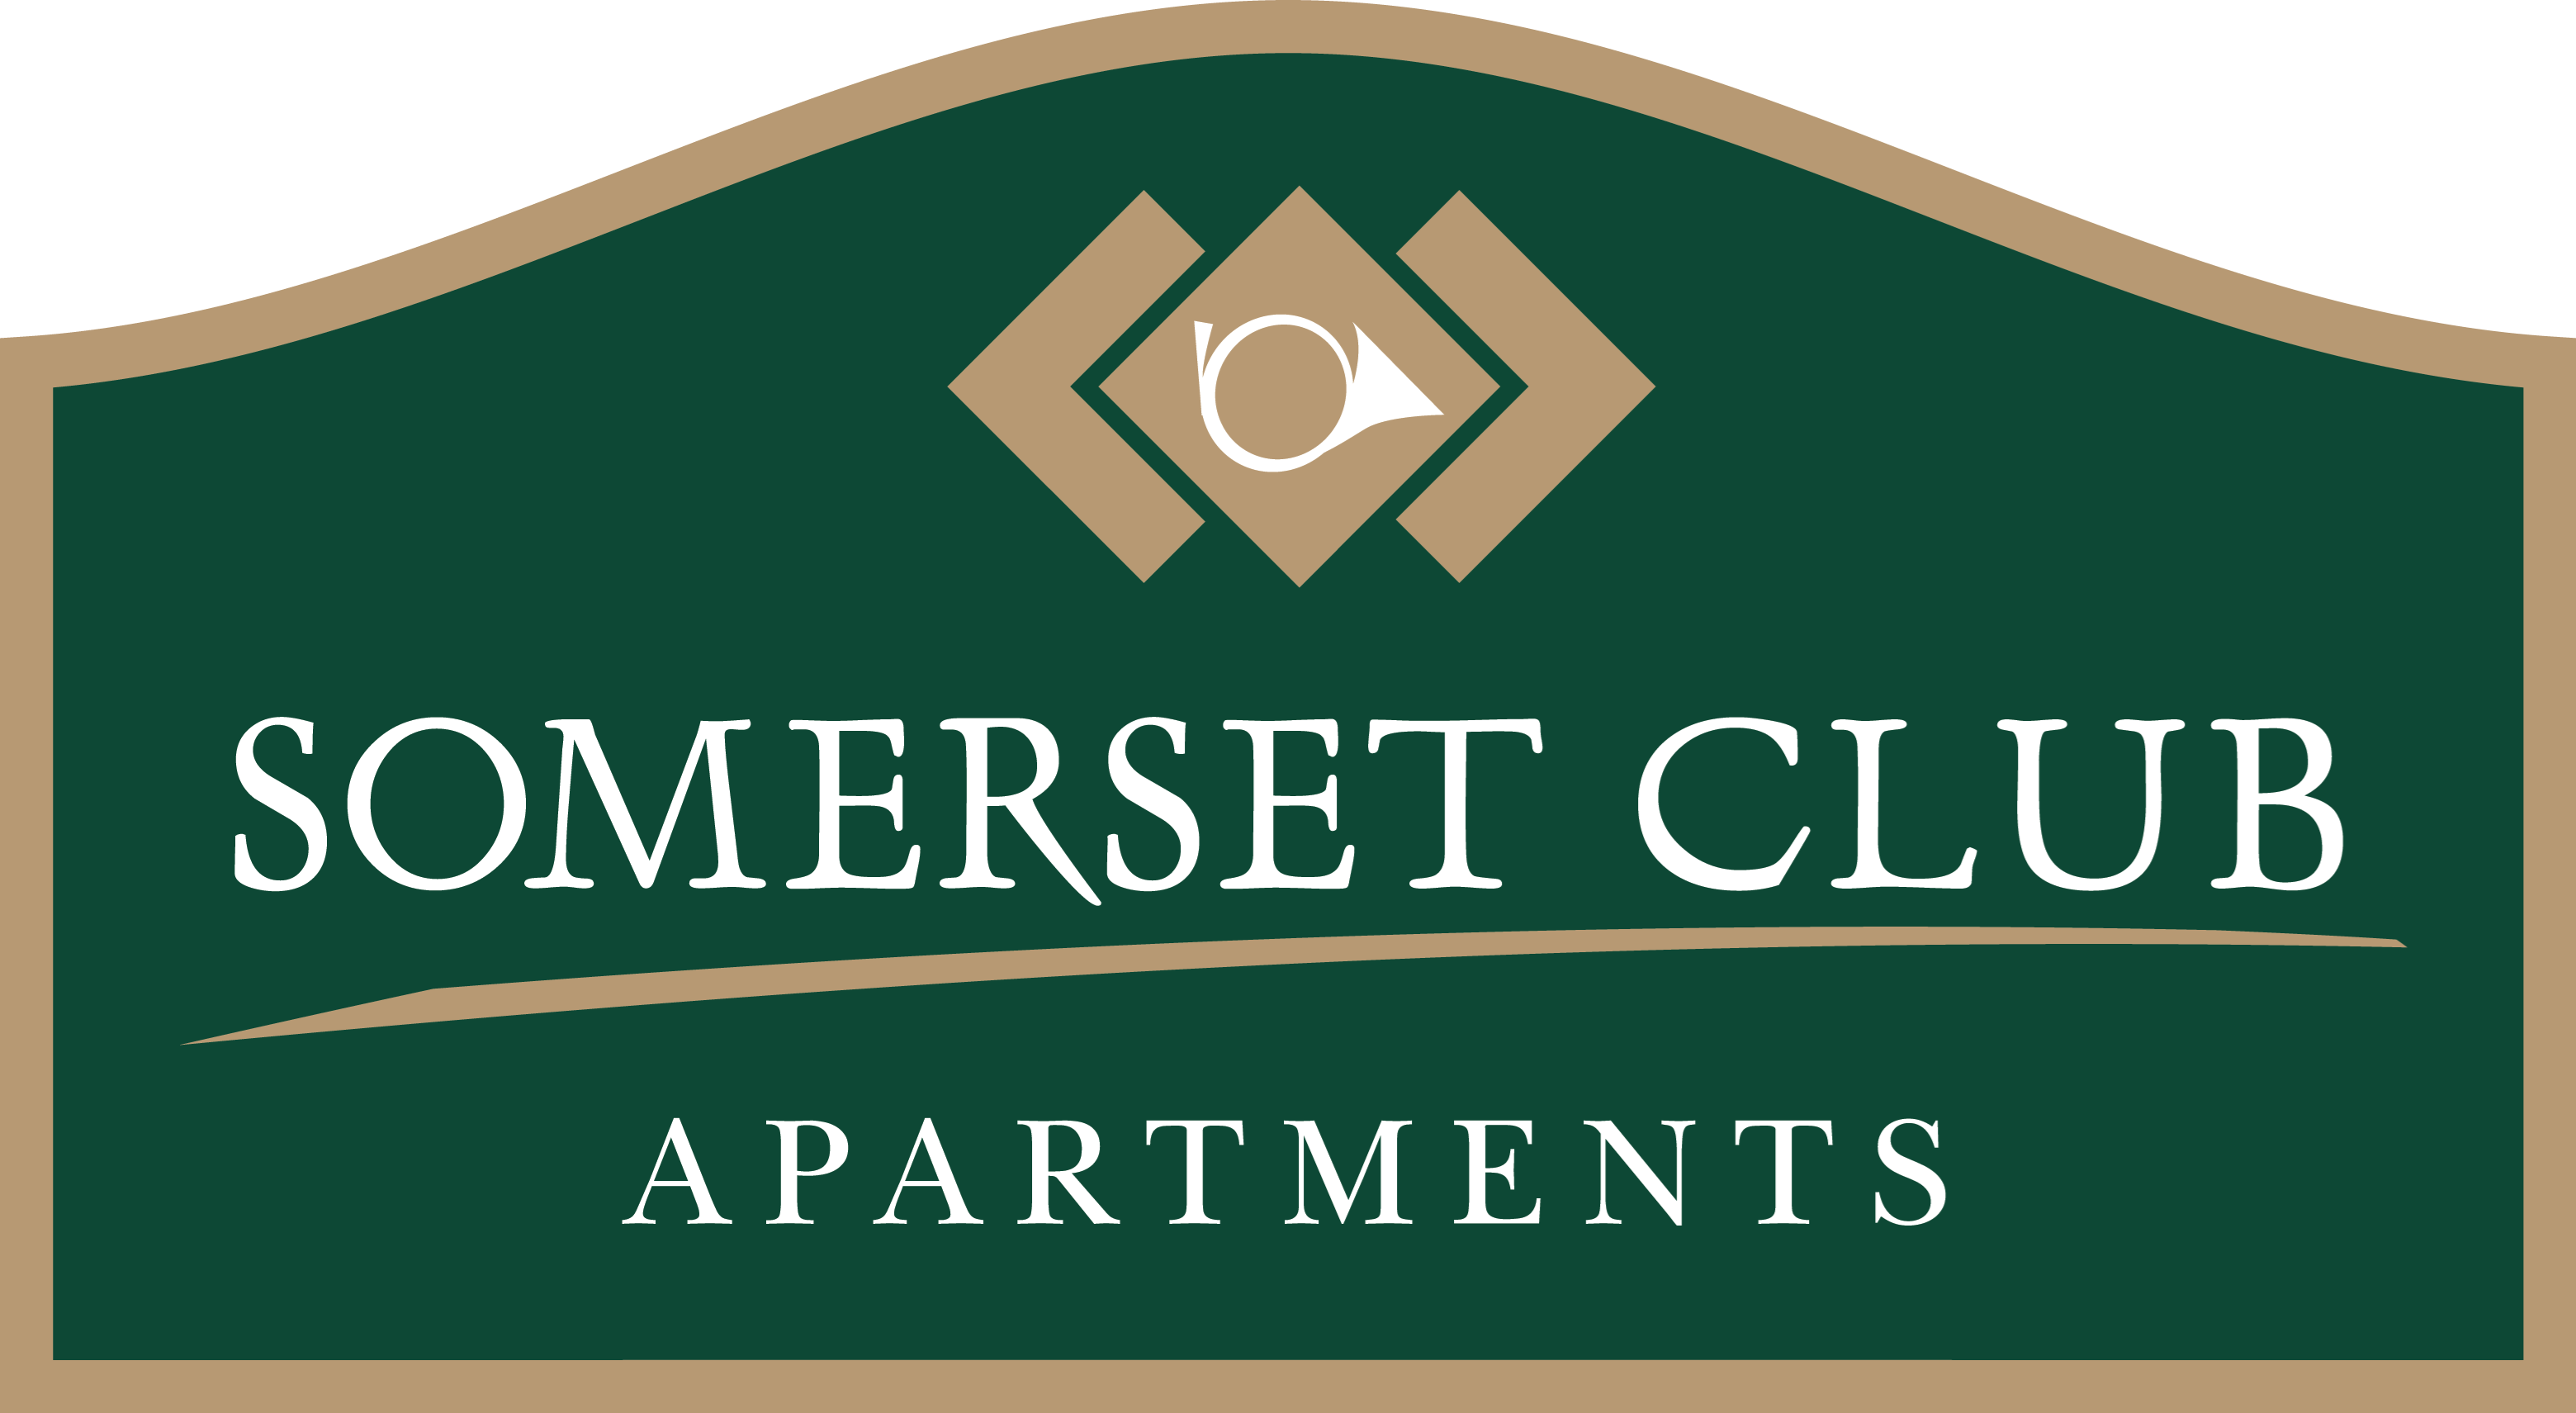 Somerset Club Apartments for rent in Cartersville, GA. Make this community your new home or visit other ConcordRENTS communities at ConcordRENTS.com. Logo